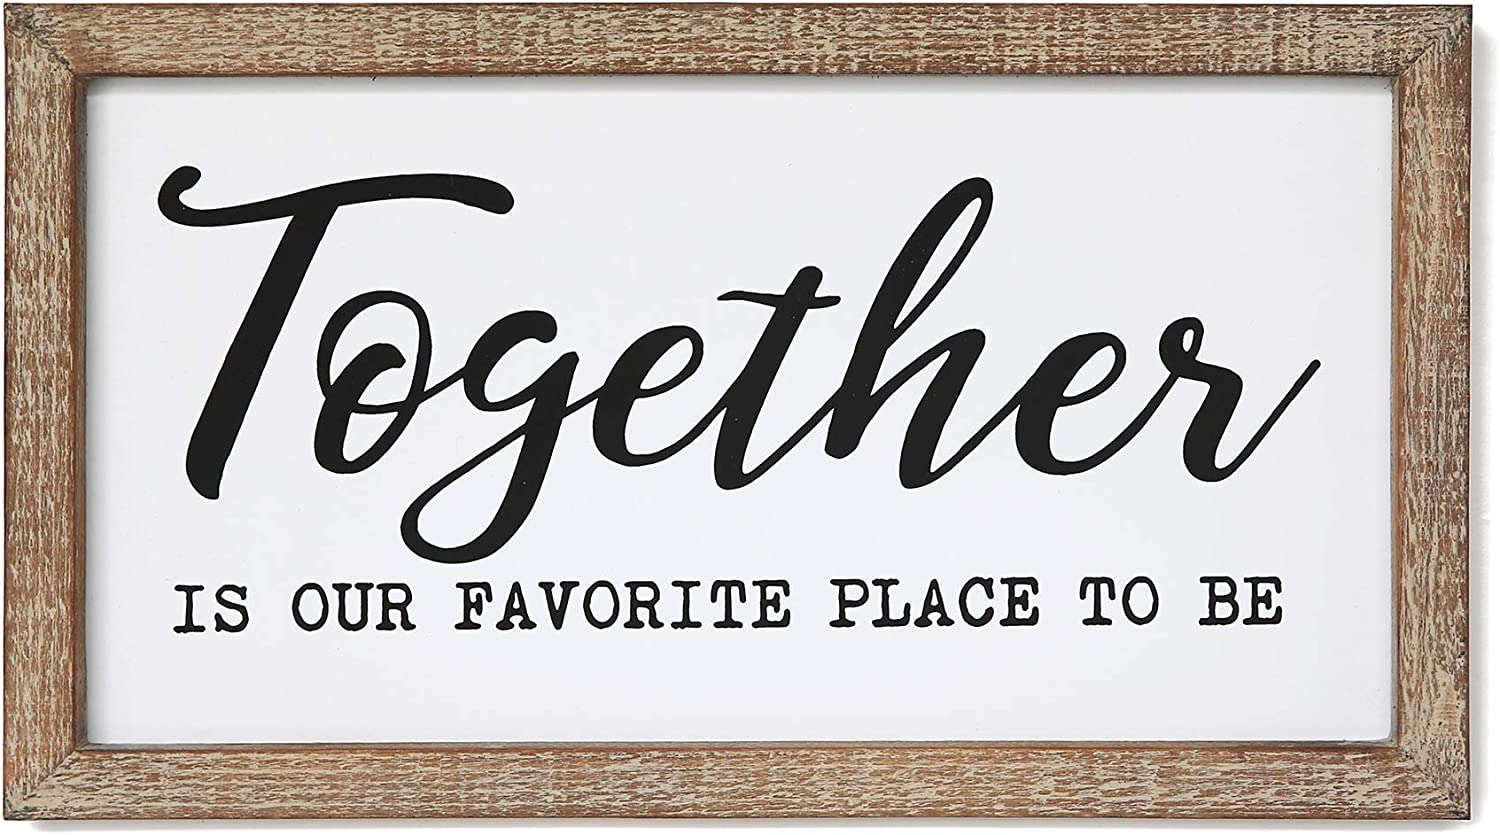 SANY DAYO HOME Together is Our Favorite Place to Be Inspirational Wall Signs 16 x 9 inches Rustic Wood Framed Modern Farmhouse Hanging Art for Home, Kitchen, Bathroom Décor